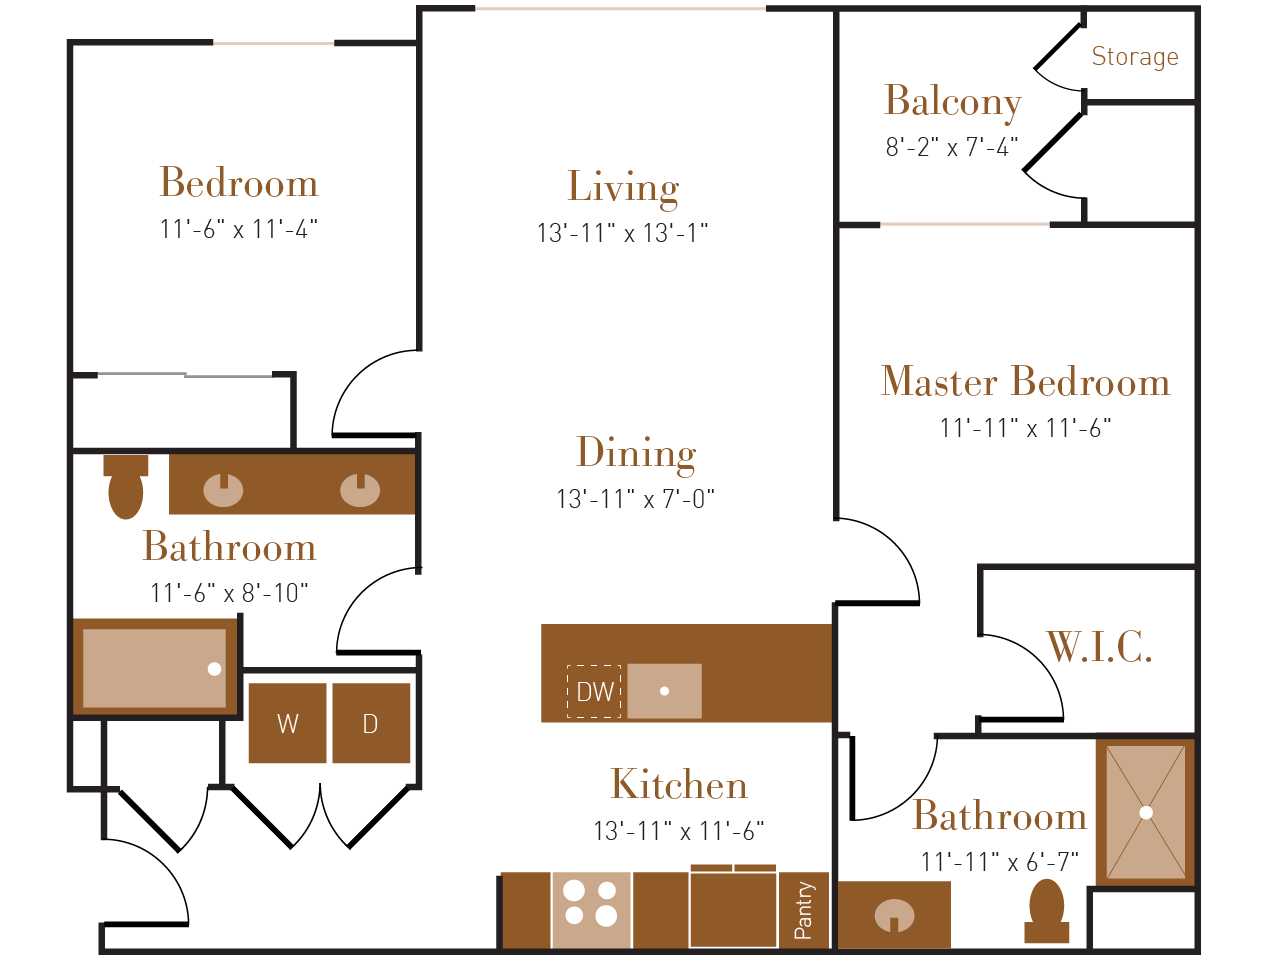 B Two floor plan diagram. Two bedrooms, two bathrooms, an open kitchen dining and living area, a balcony, and a washer dryer.